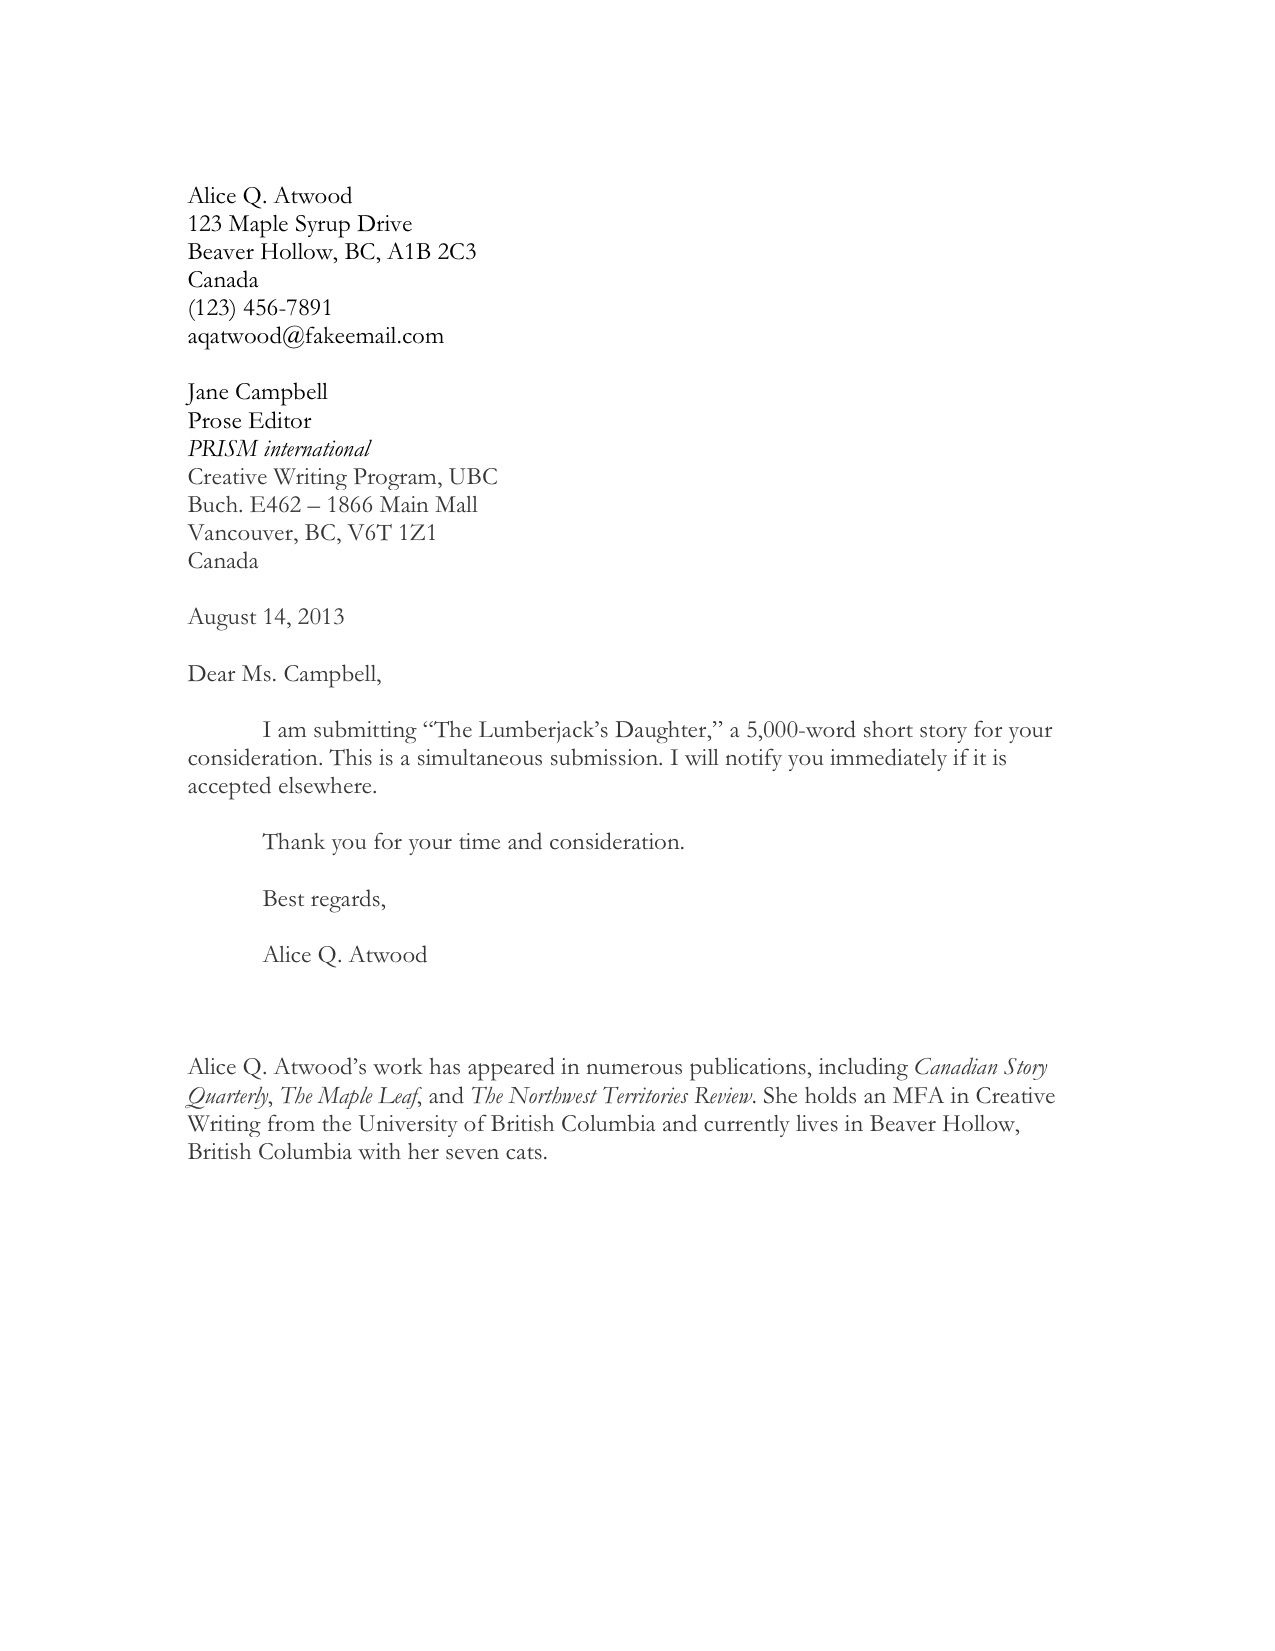 sample cover letter to submit documents - application letter sample word